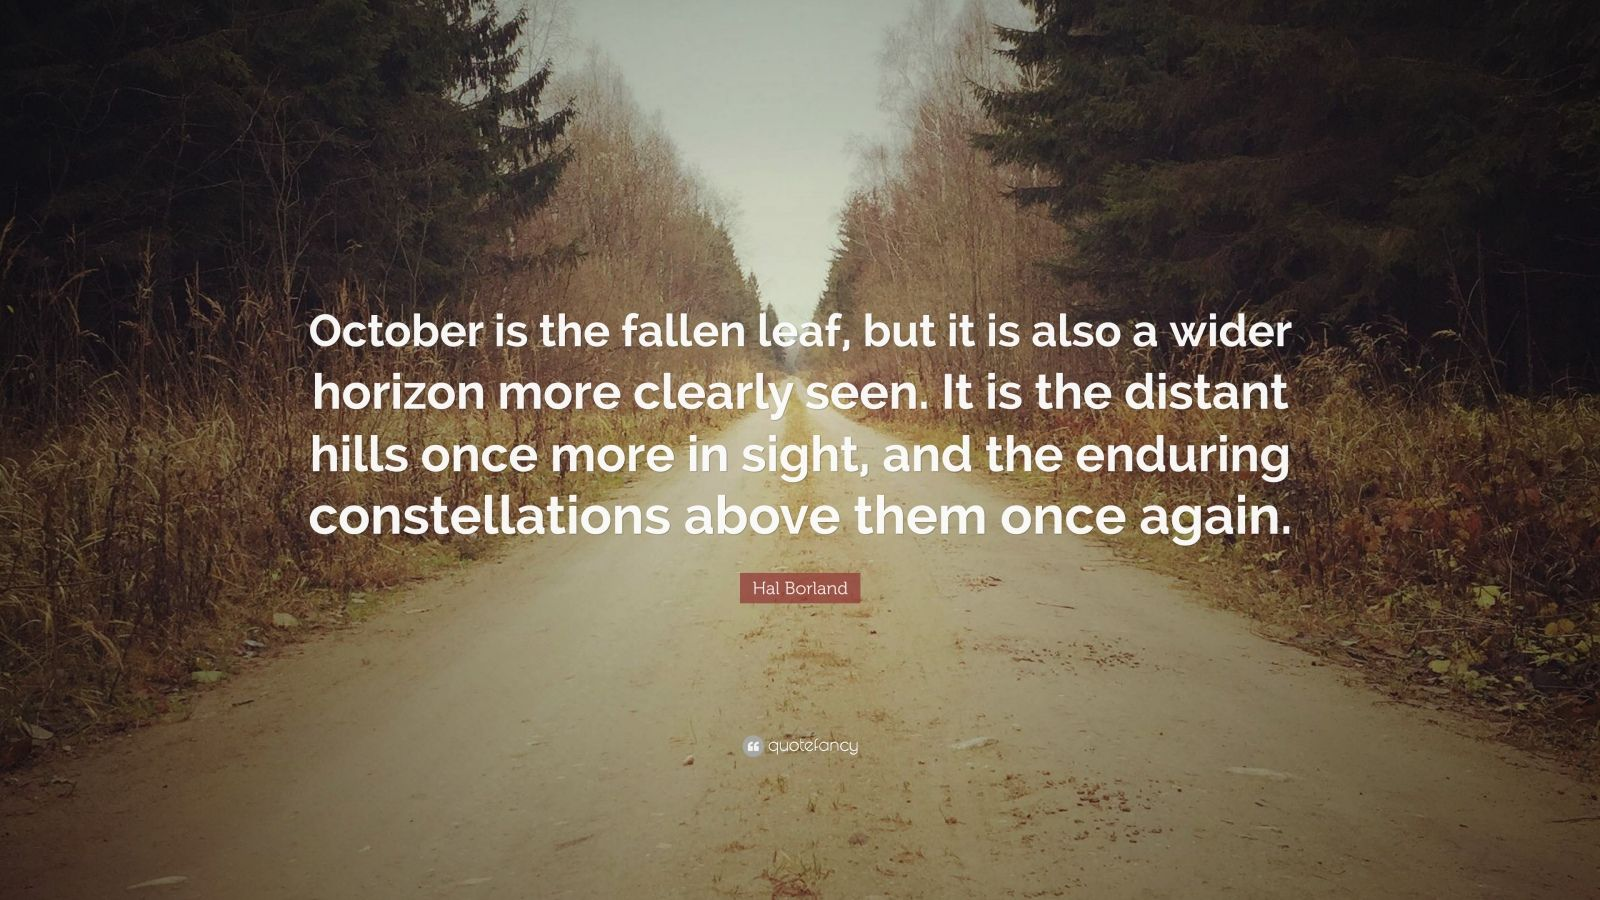 """Hal Borland Quote: """"October is the fallen leaf, but it is also a wider horizon more clearly seen. It is the distant hills once more in sight, and the enduring constellations above them once again."""""""